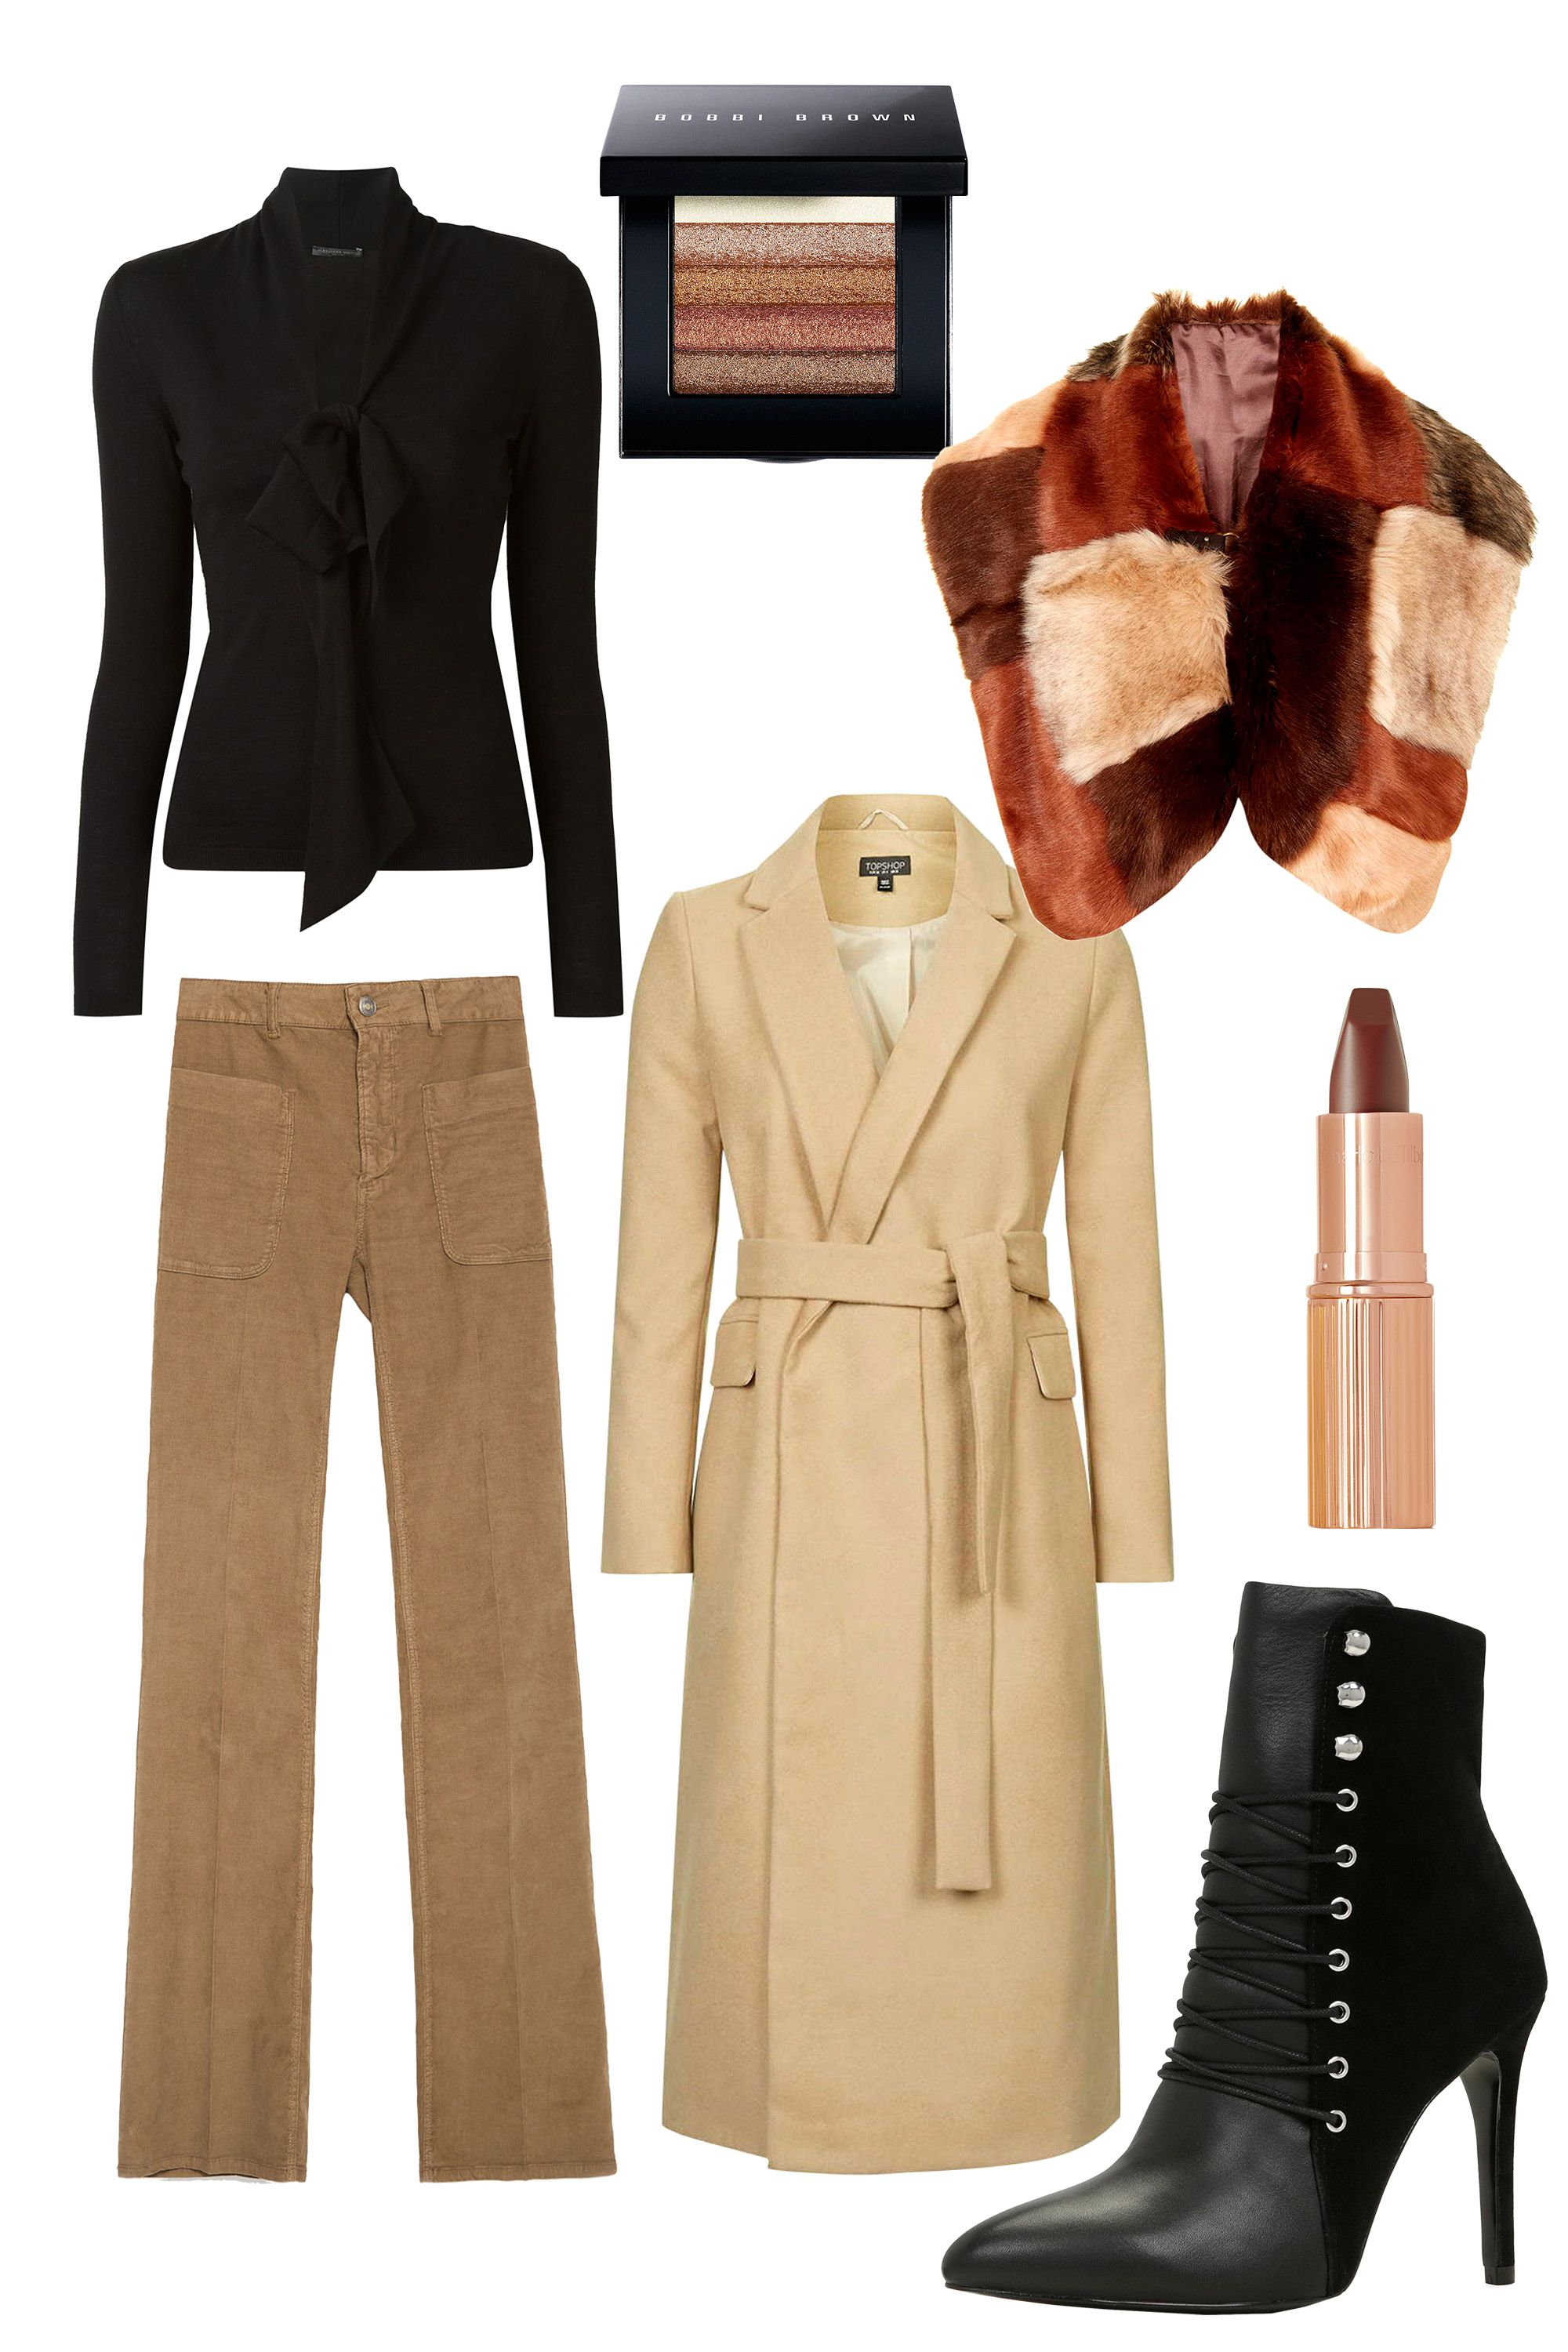 <p>A no-brainer way to get the boho babe look is flared pants — start there and just add accent pieces. Wear them with a '70s-style pussybow sweater, a long waistcoat, a plush fur stole, and a great pair of lace-up booties. You're sure to be the most stylish woman in the room. </p>